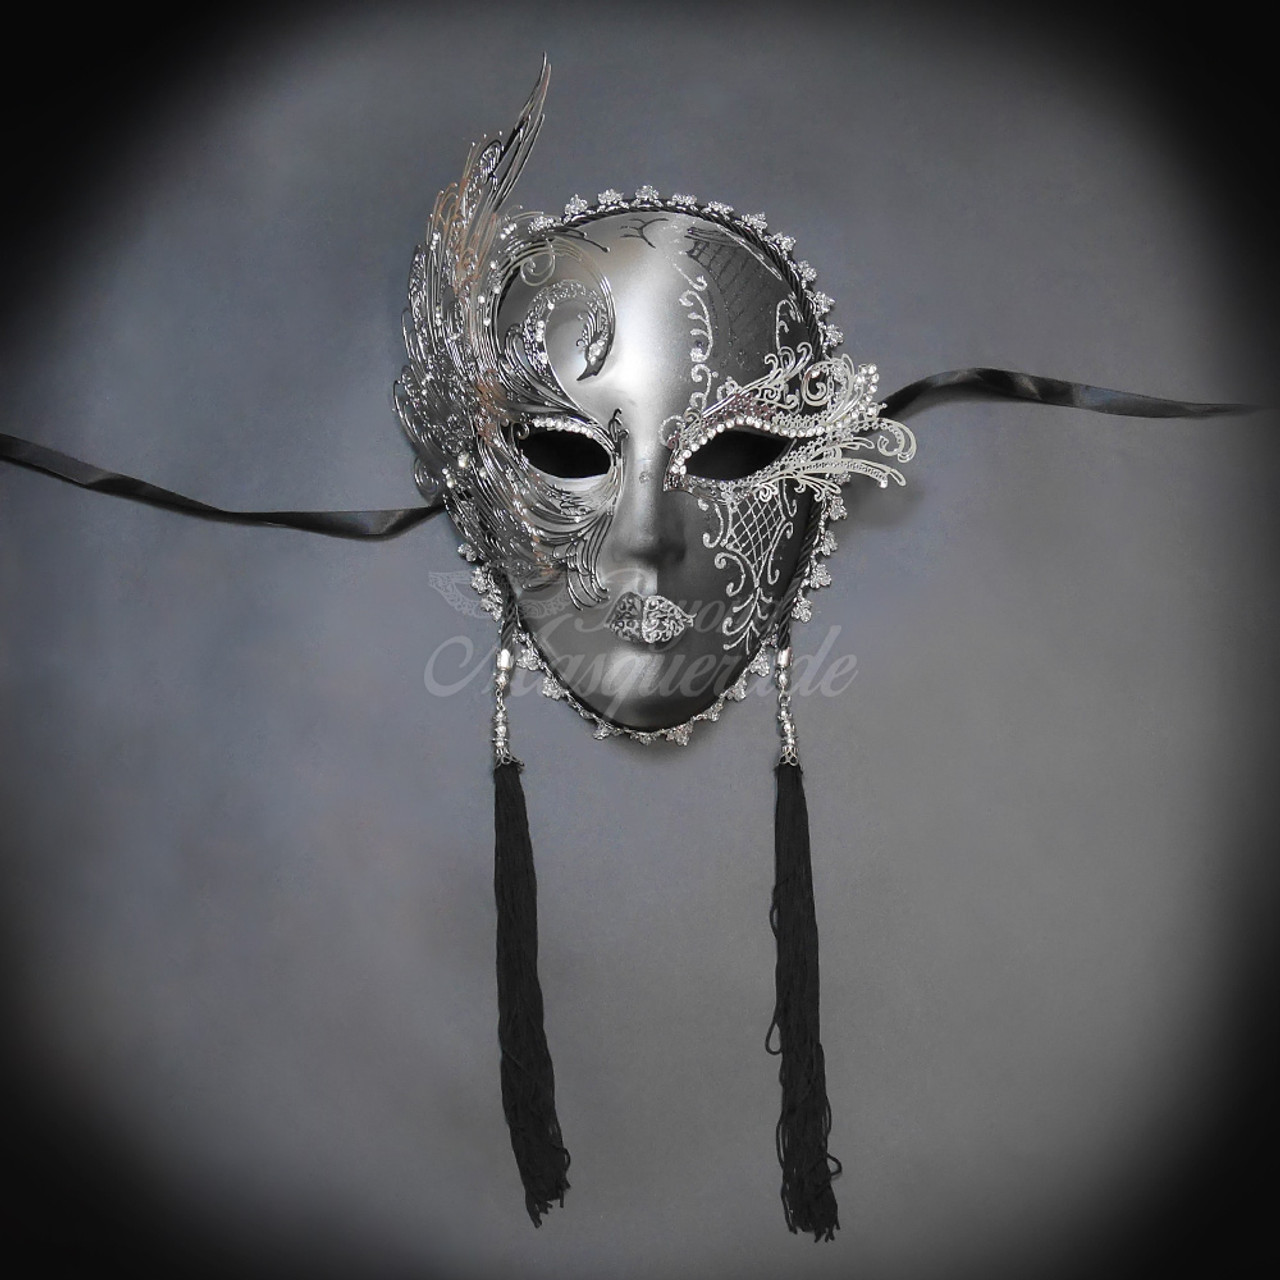 Black /& Silver Theme Carnival /& Metal Masquerade Prom Halloween Mask